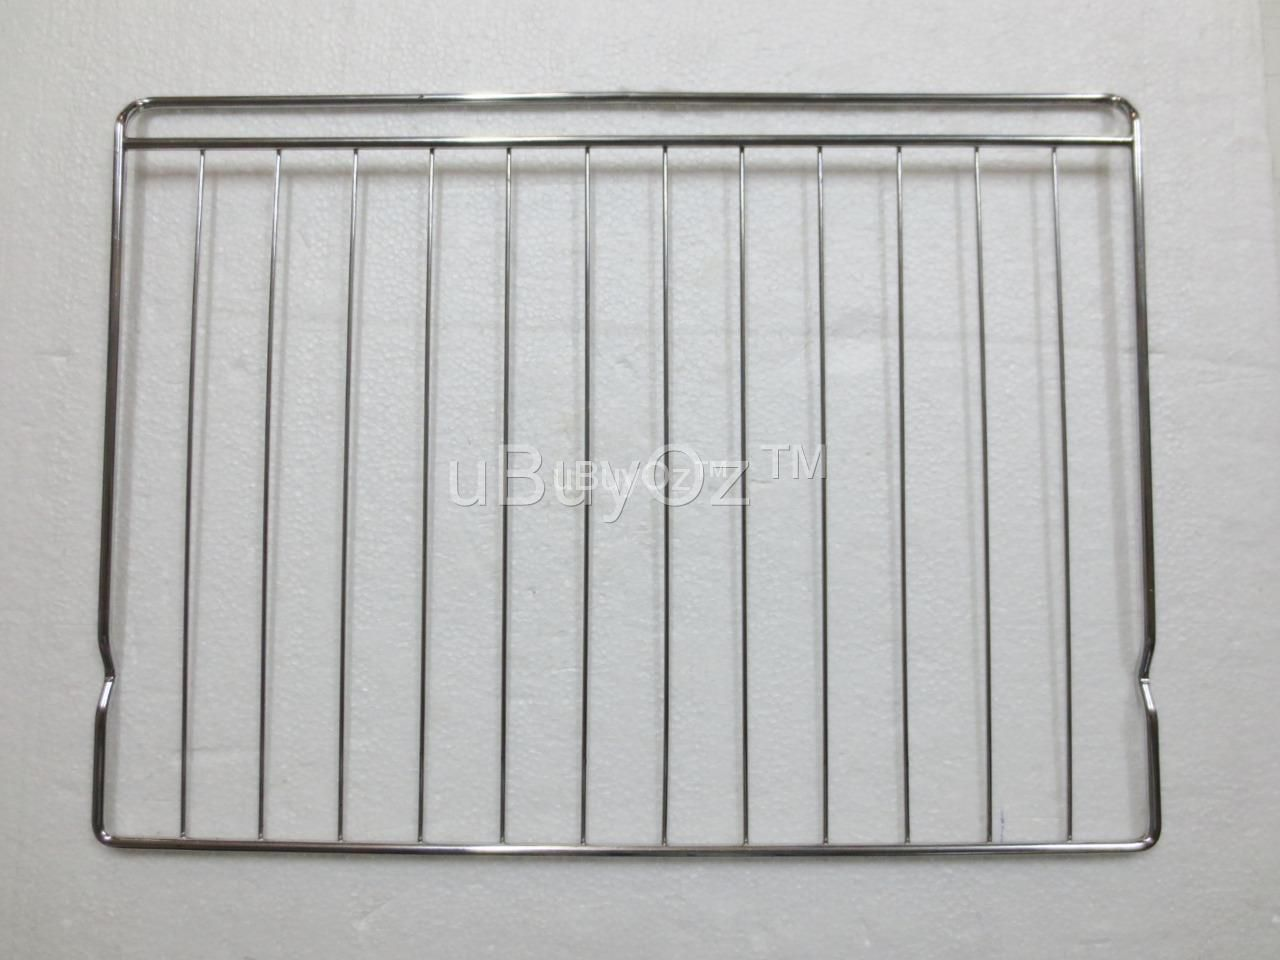 Chef Oven Cooker Wire Rack 0327001194